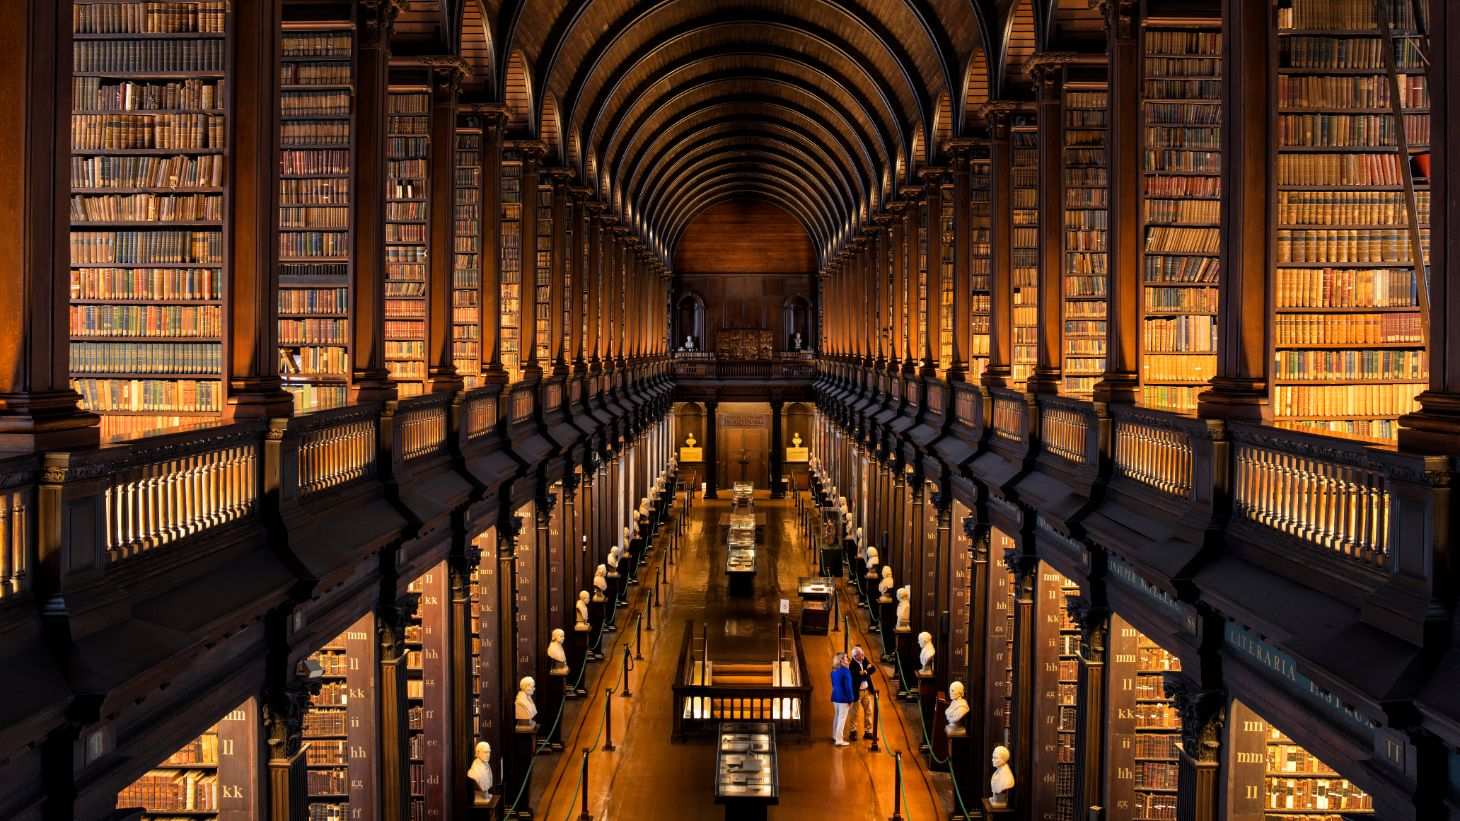 View the Book of Kells at Trinity College.